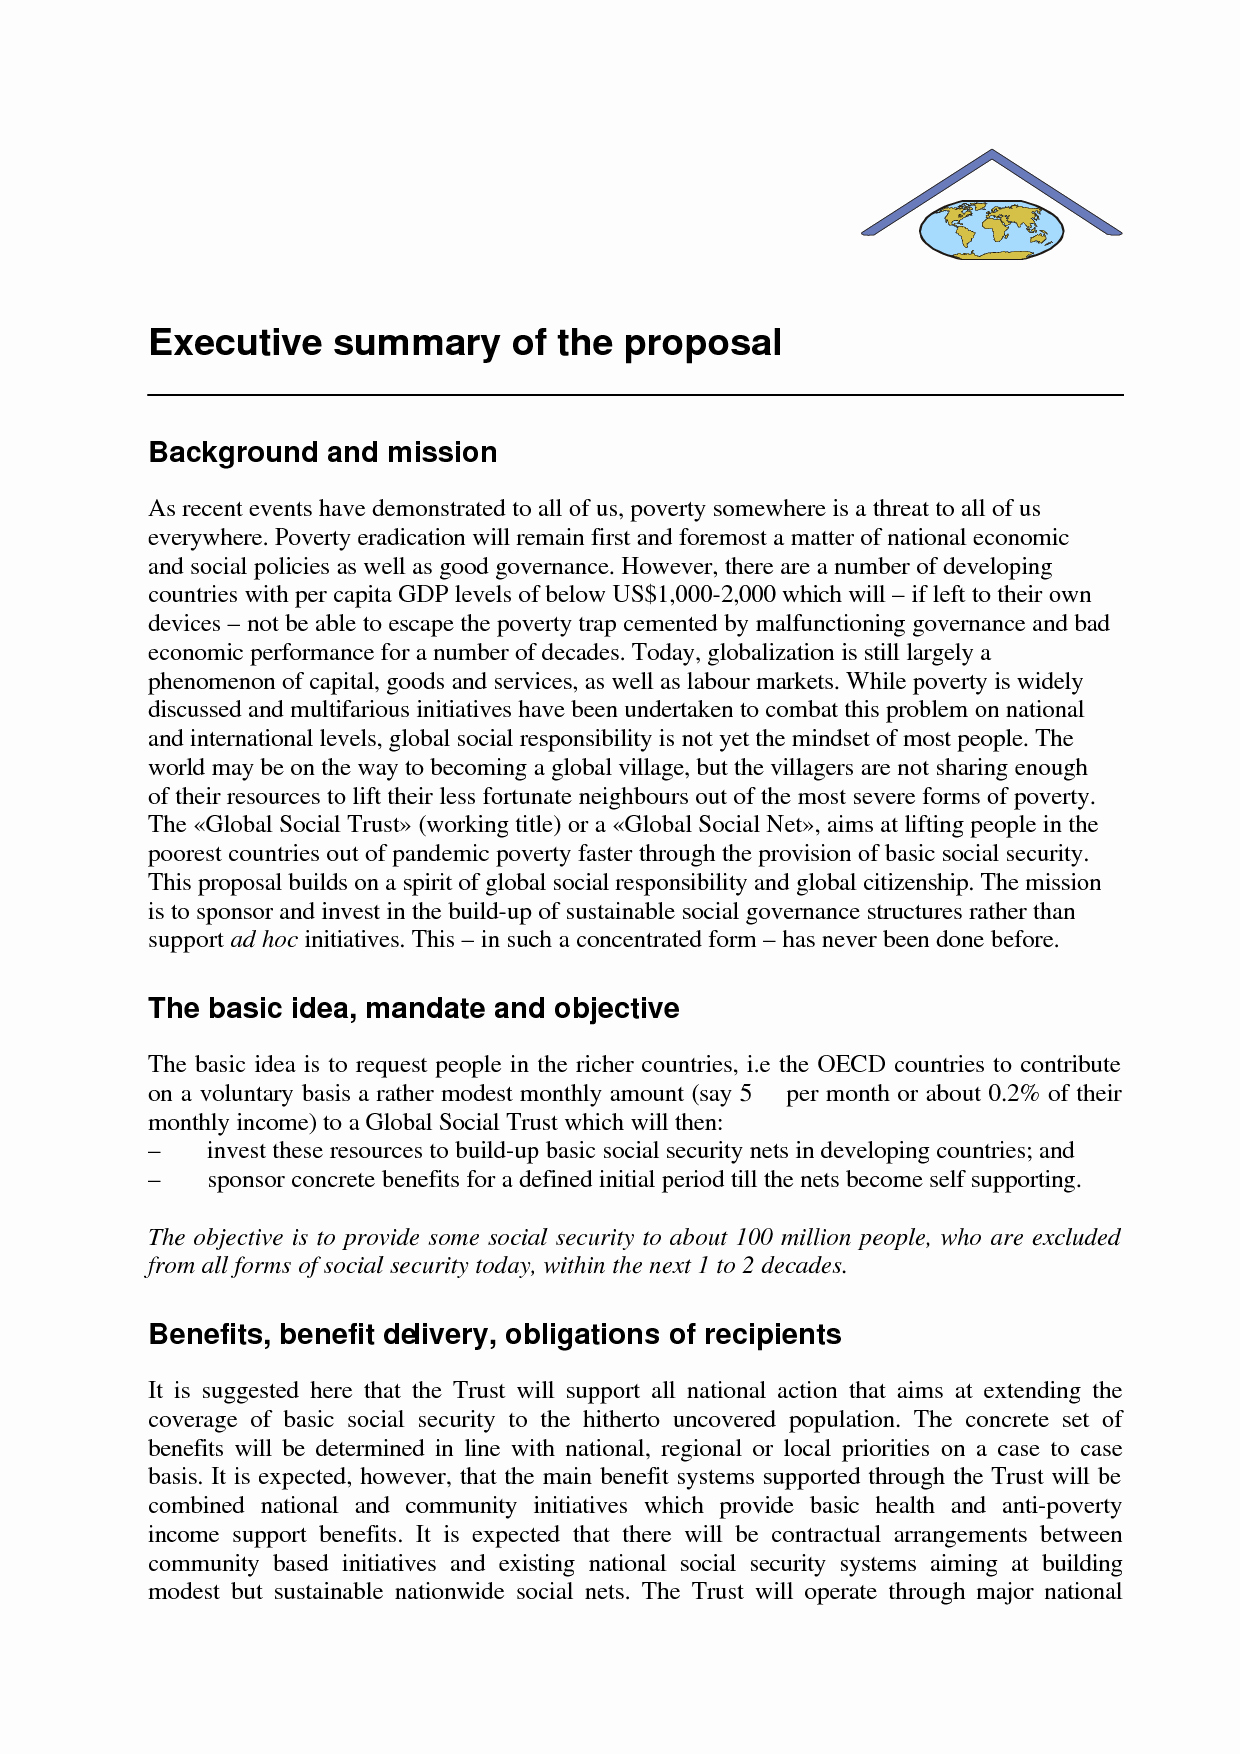 Executive Summary Sample for Proposal Best Of Examples Of Executive Summary for A Business Plan